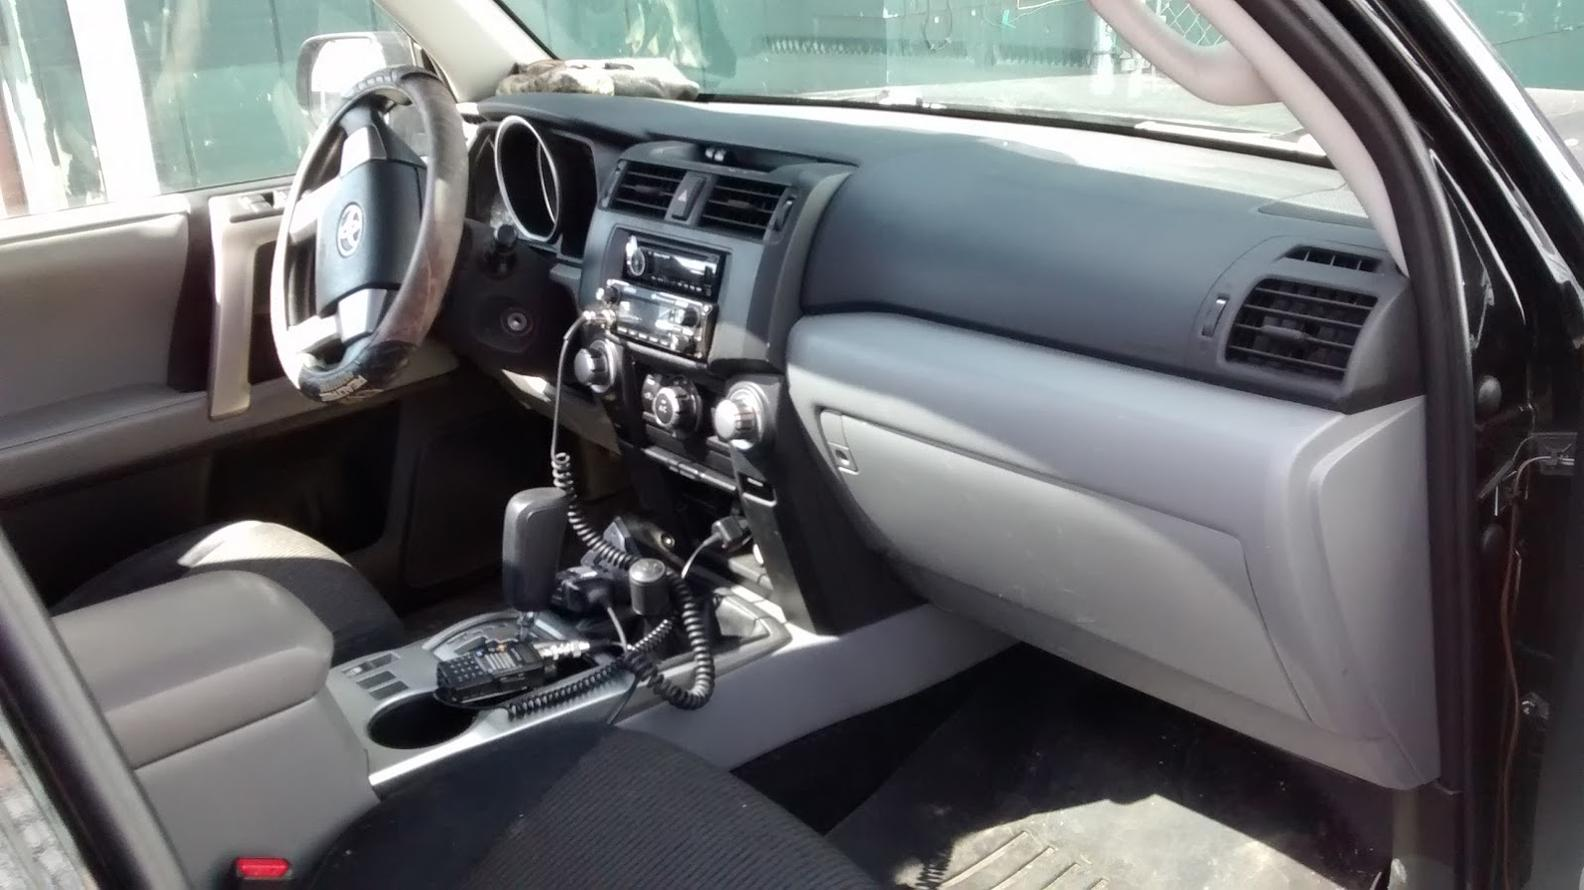 Toyota 4runner Interior Limited Runner With 5th Gen Navigation Wiring Info Forum Largest Attached Middelport Kb